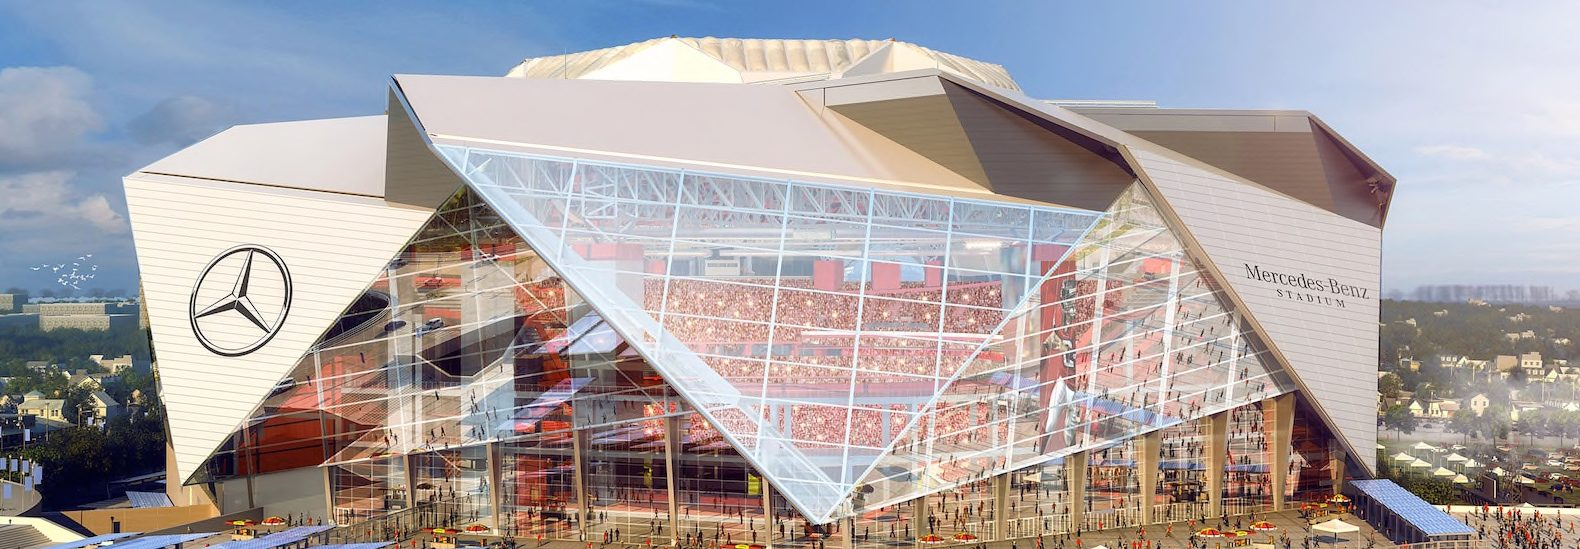 Atlanta s mercedes benz stadium to be nfl s first ever for Address of mercedes benz stadium